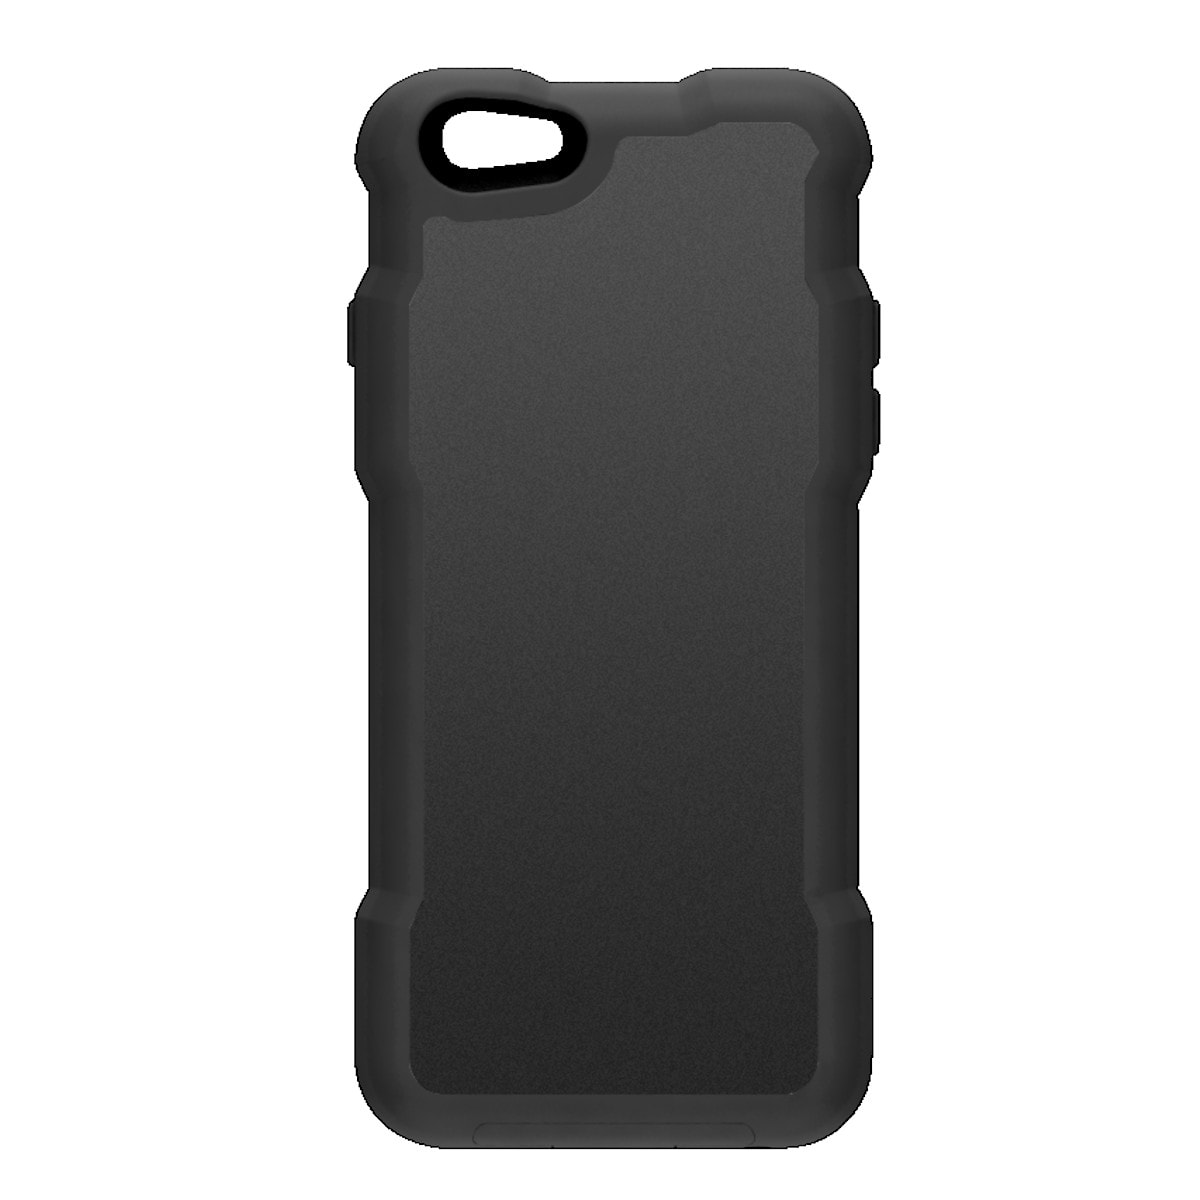 Kabelloses Qi-Ladecover für iPhone 6/6S